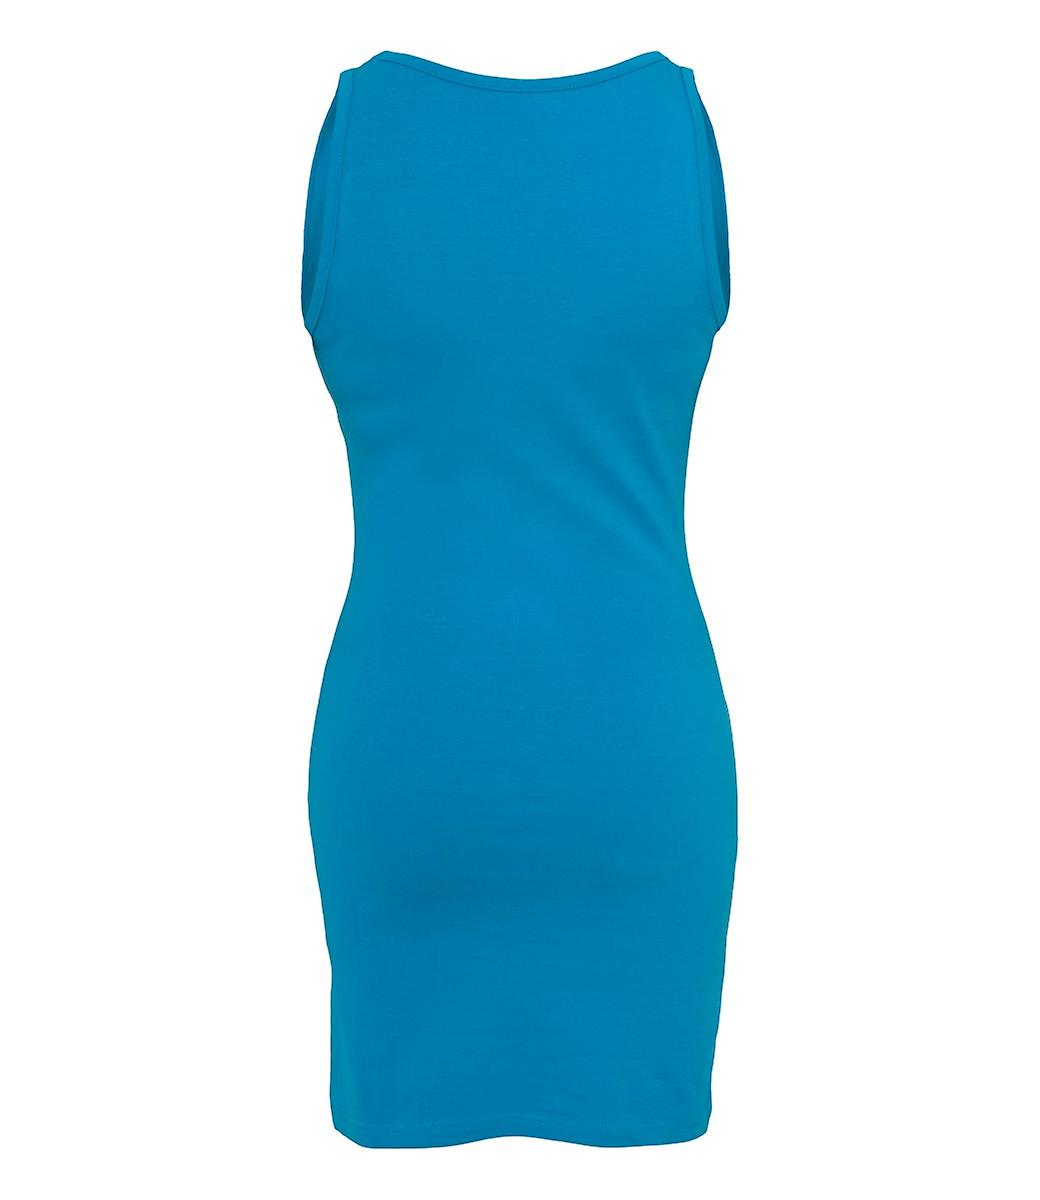 Urban classics ladies sleeveless dress